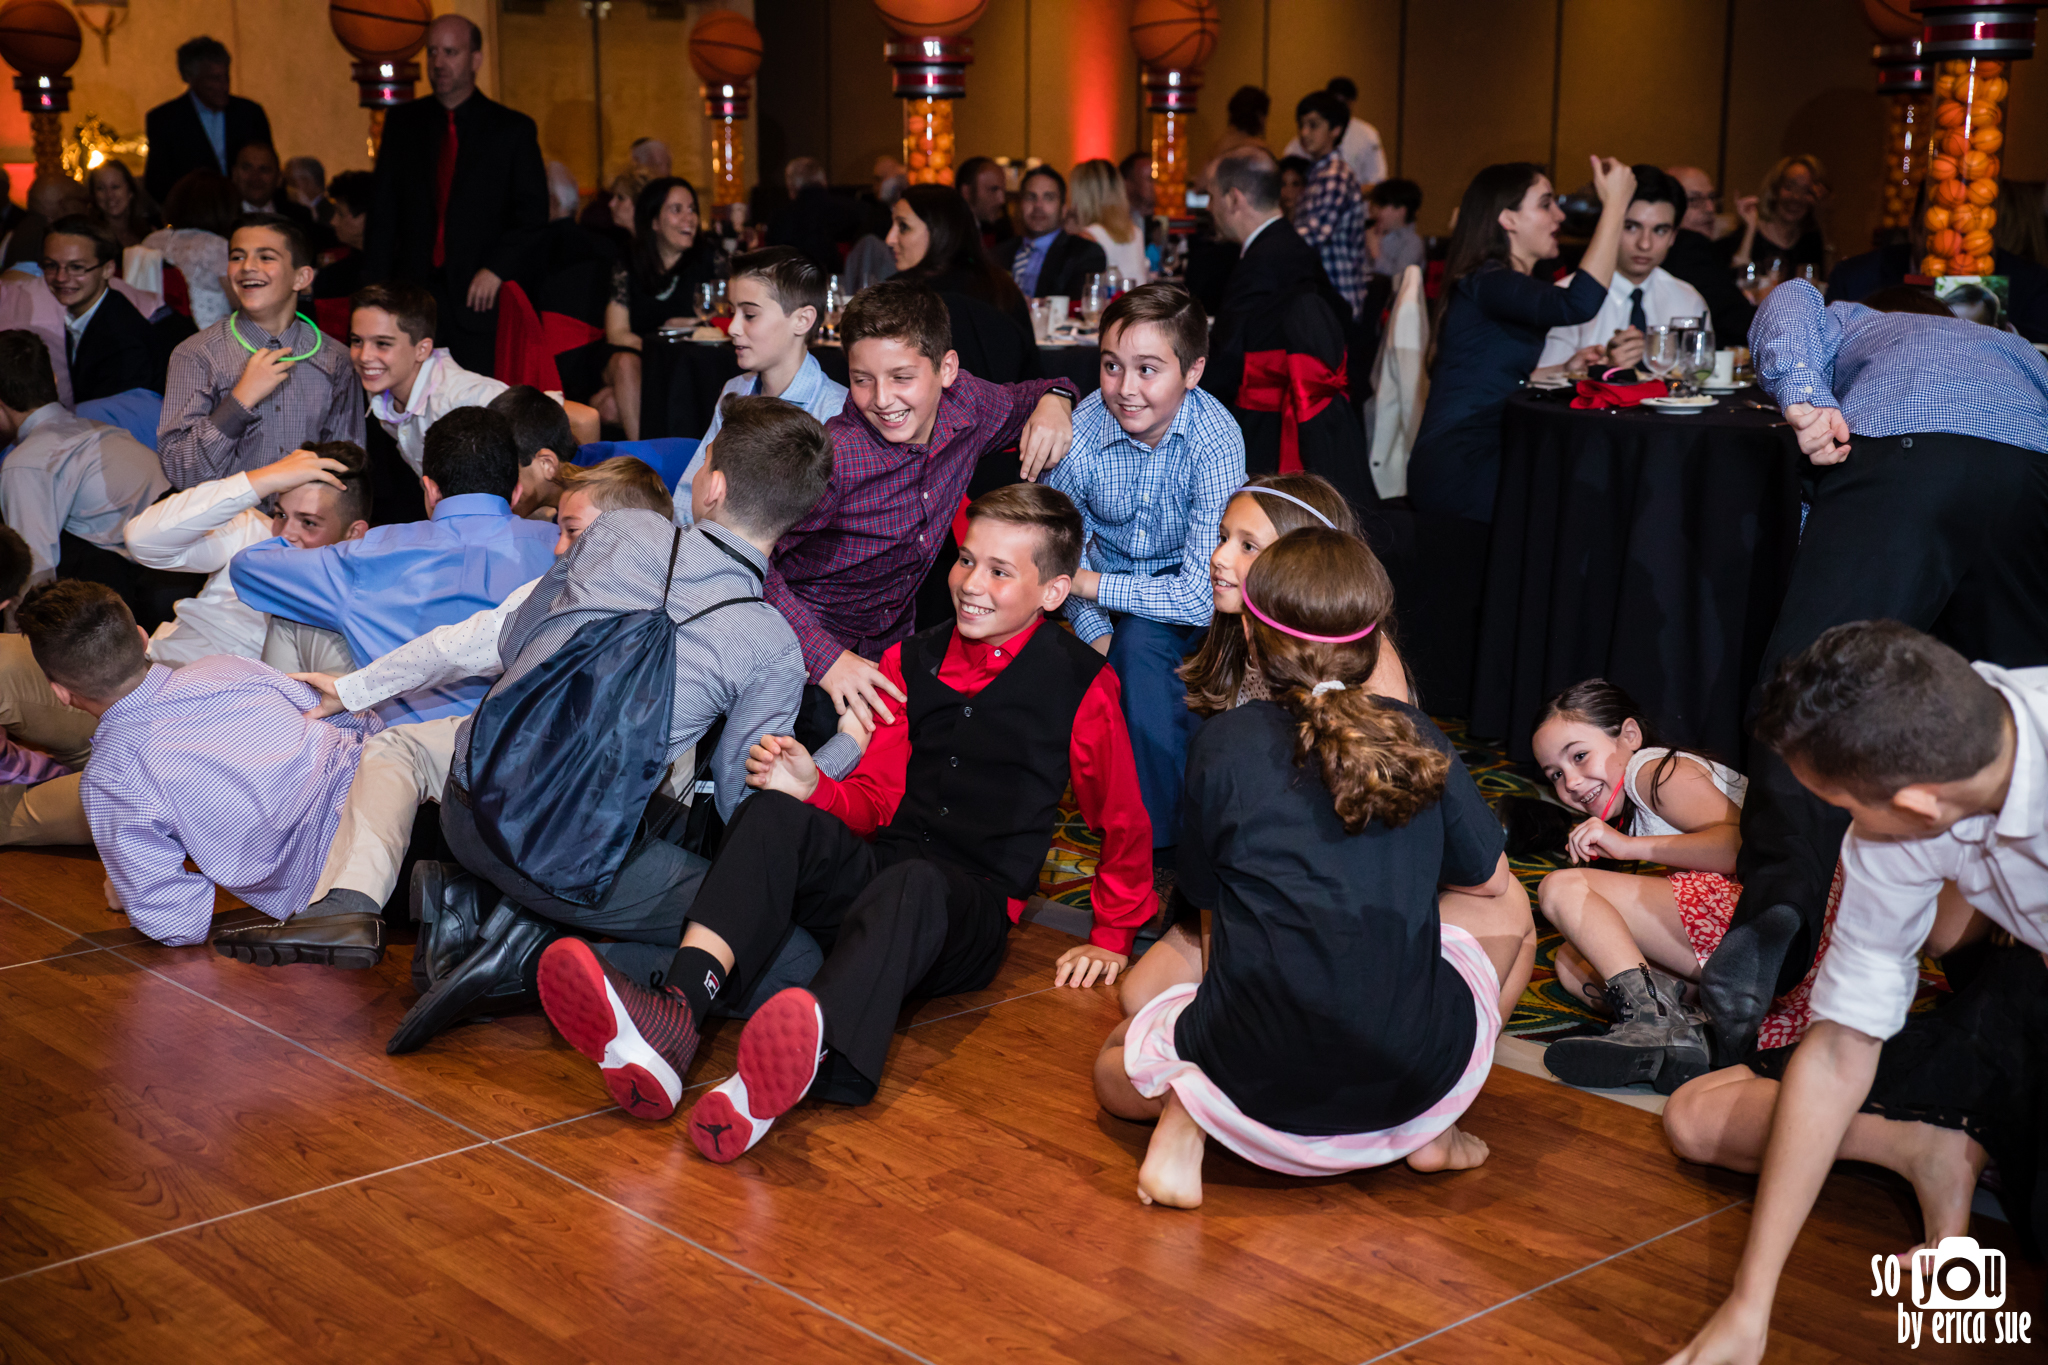 bar-mitzvah-photographer-parkland-fl-marriott-6822.jpg